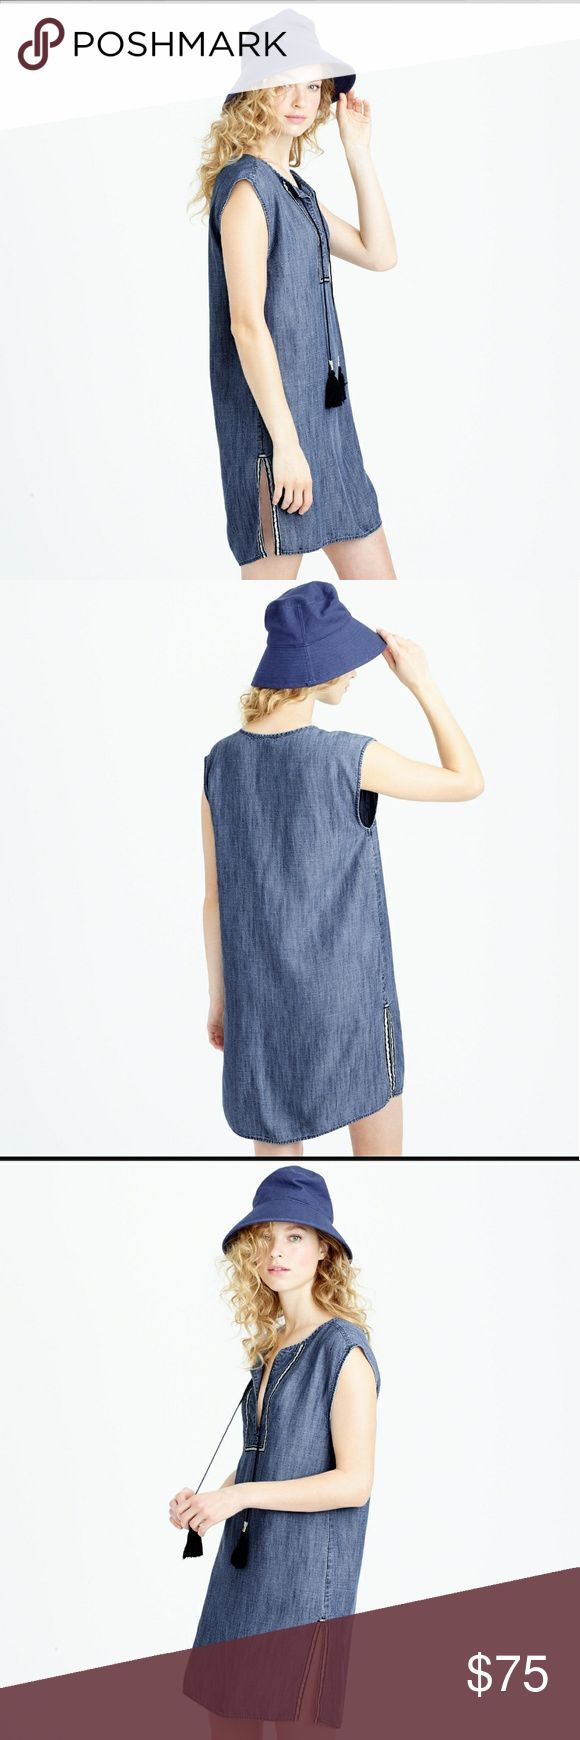 """J. Crew Drapey Chambray Beach Tunic Like new! Perfect condition. Effortless sheath dress with tassel detail, plunging neckline amd metallic-striped trim take this lightweight, drapey chambray beach tunic from pretty to summer staple. Measurements: Length 36"""", Bust 20"""" J. Crew Tops Tunics"""